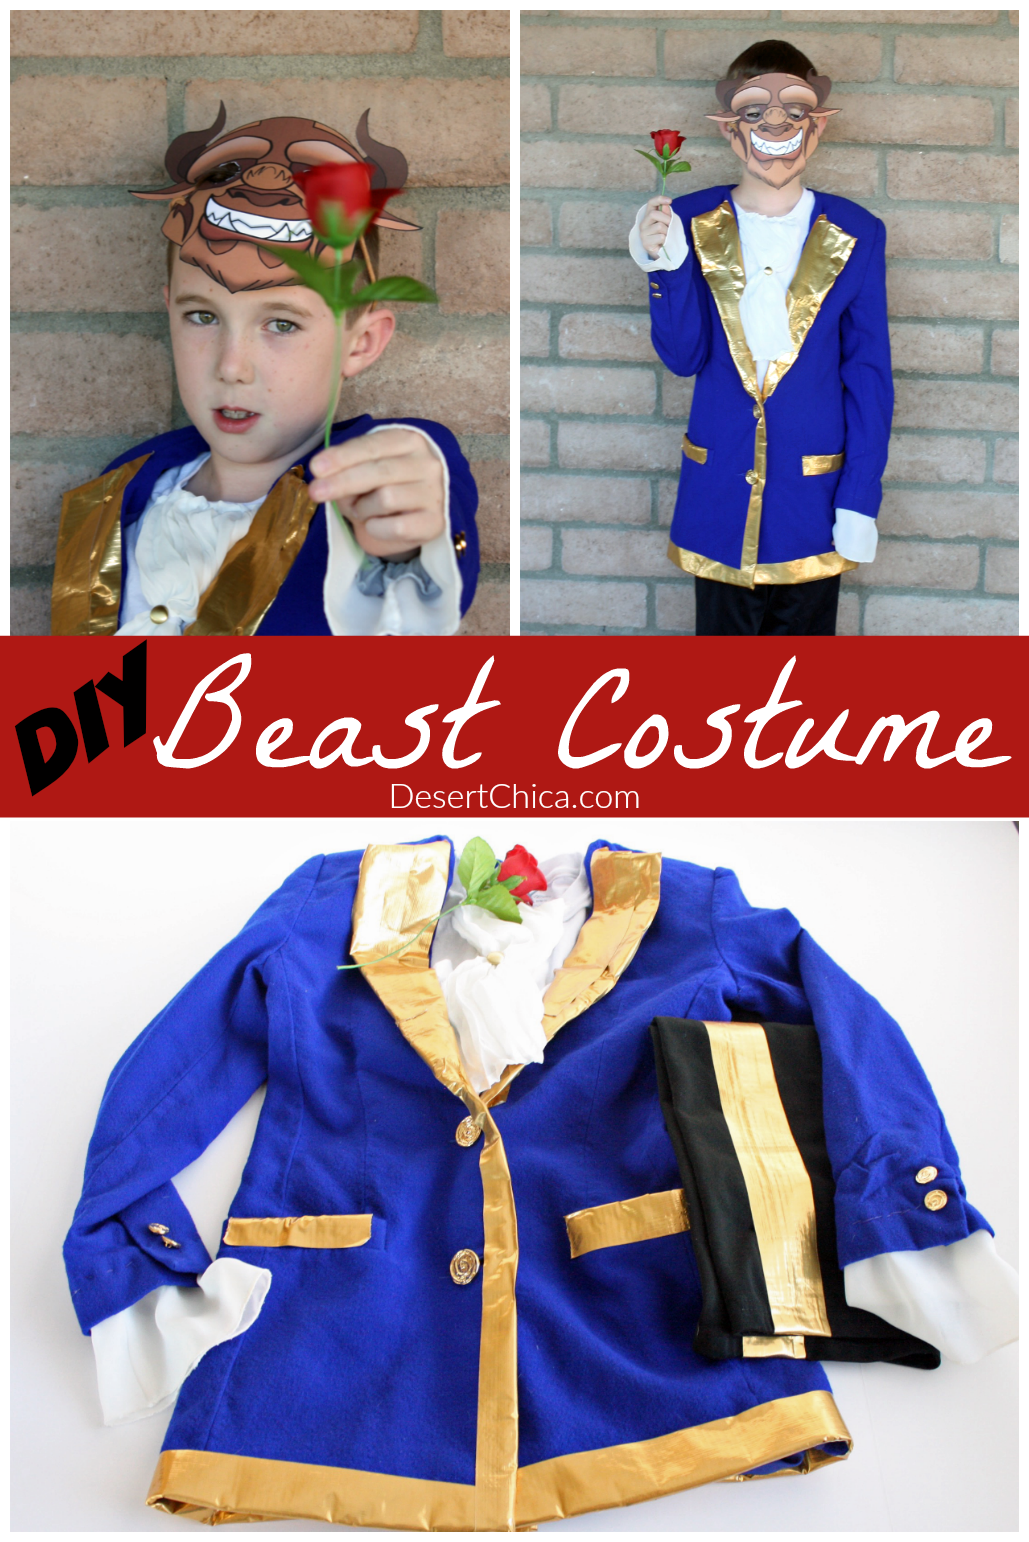 Diy beast costume desert chica beauty and the beast might be a fun costume theme with disneys latest live action movie solutioingenieria